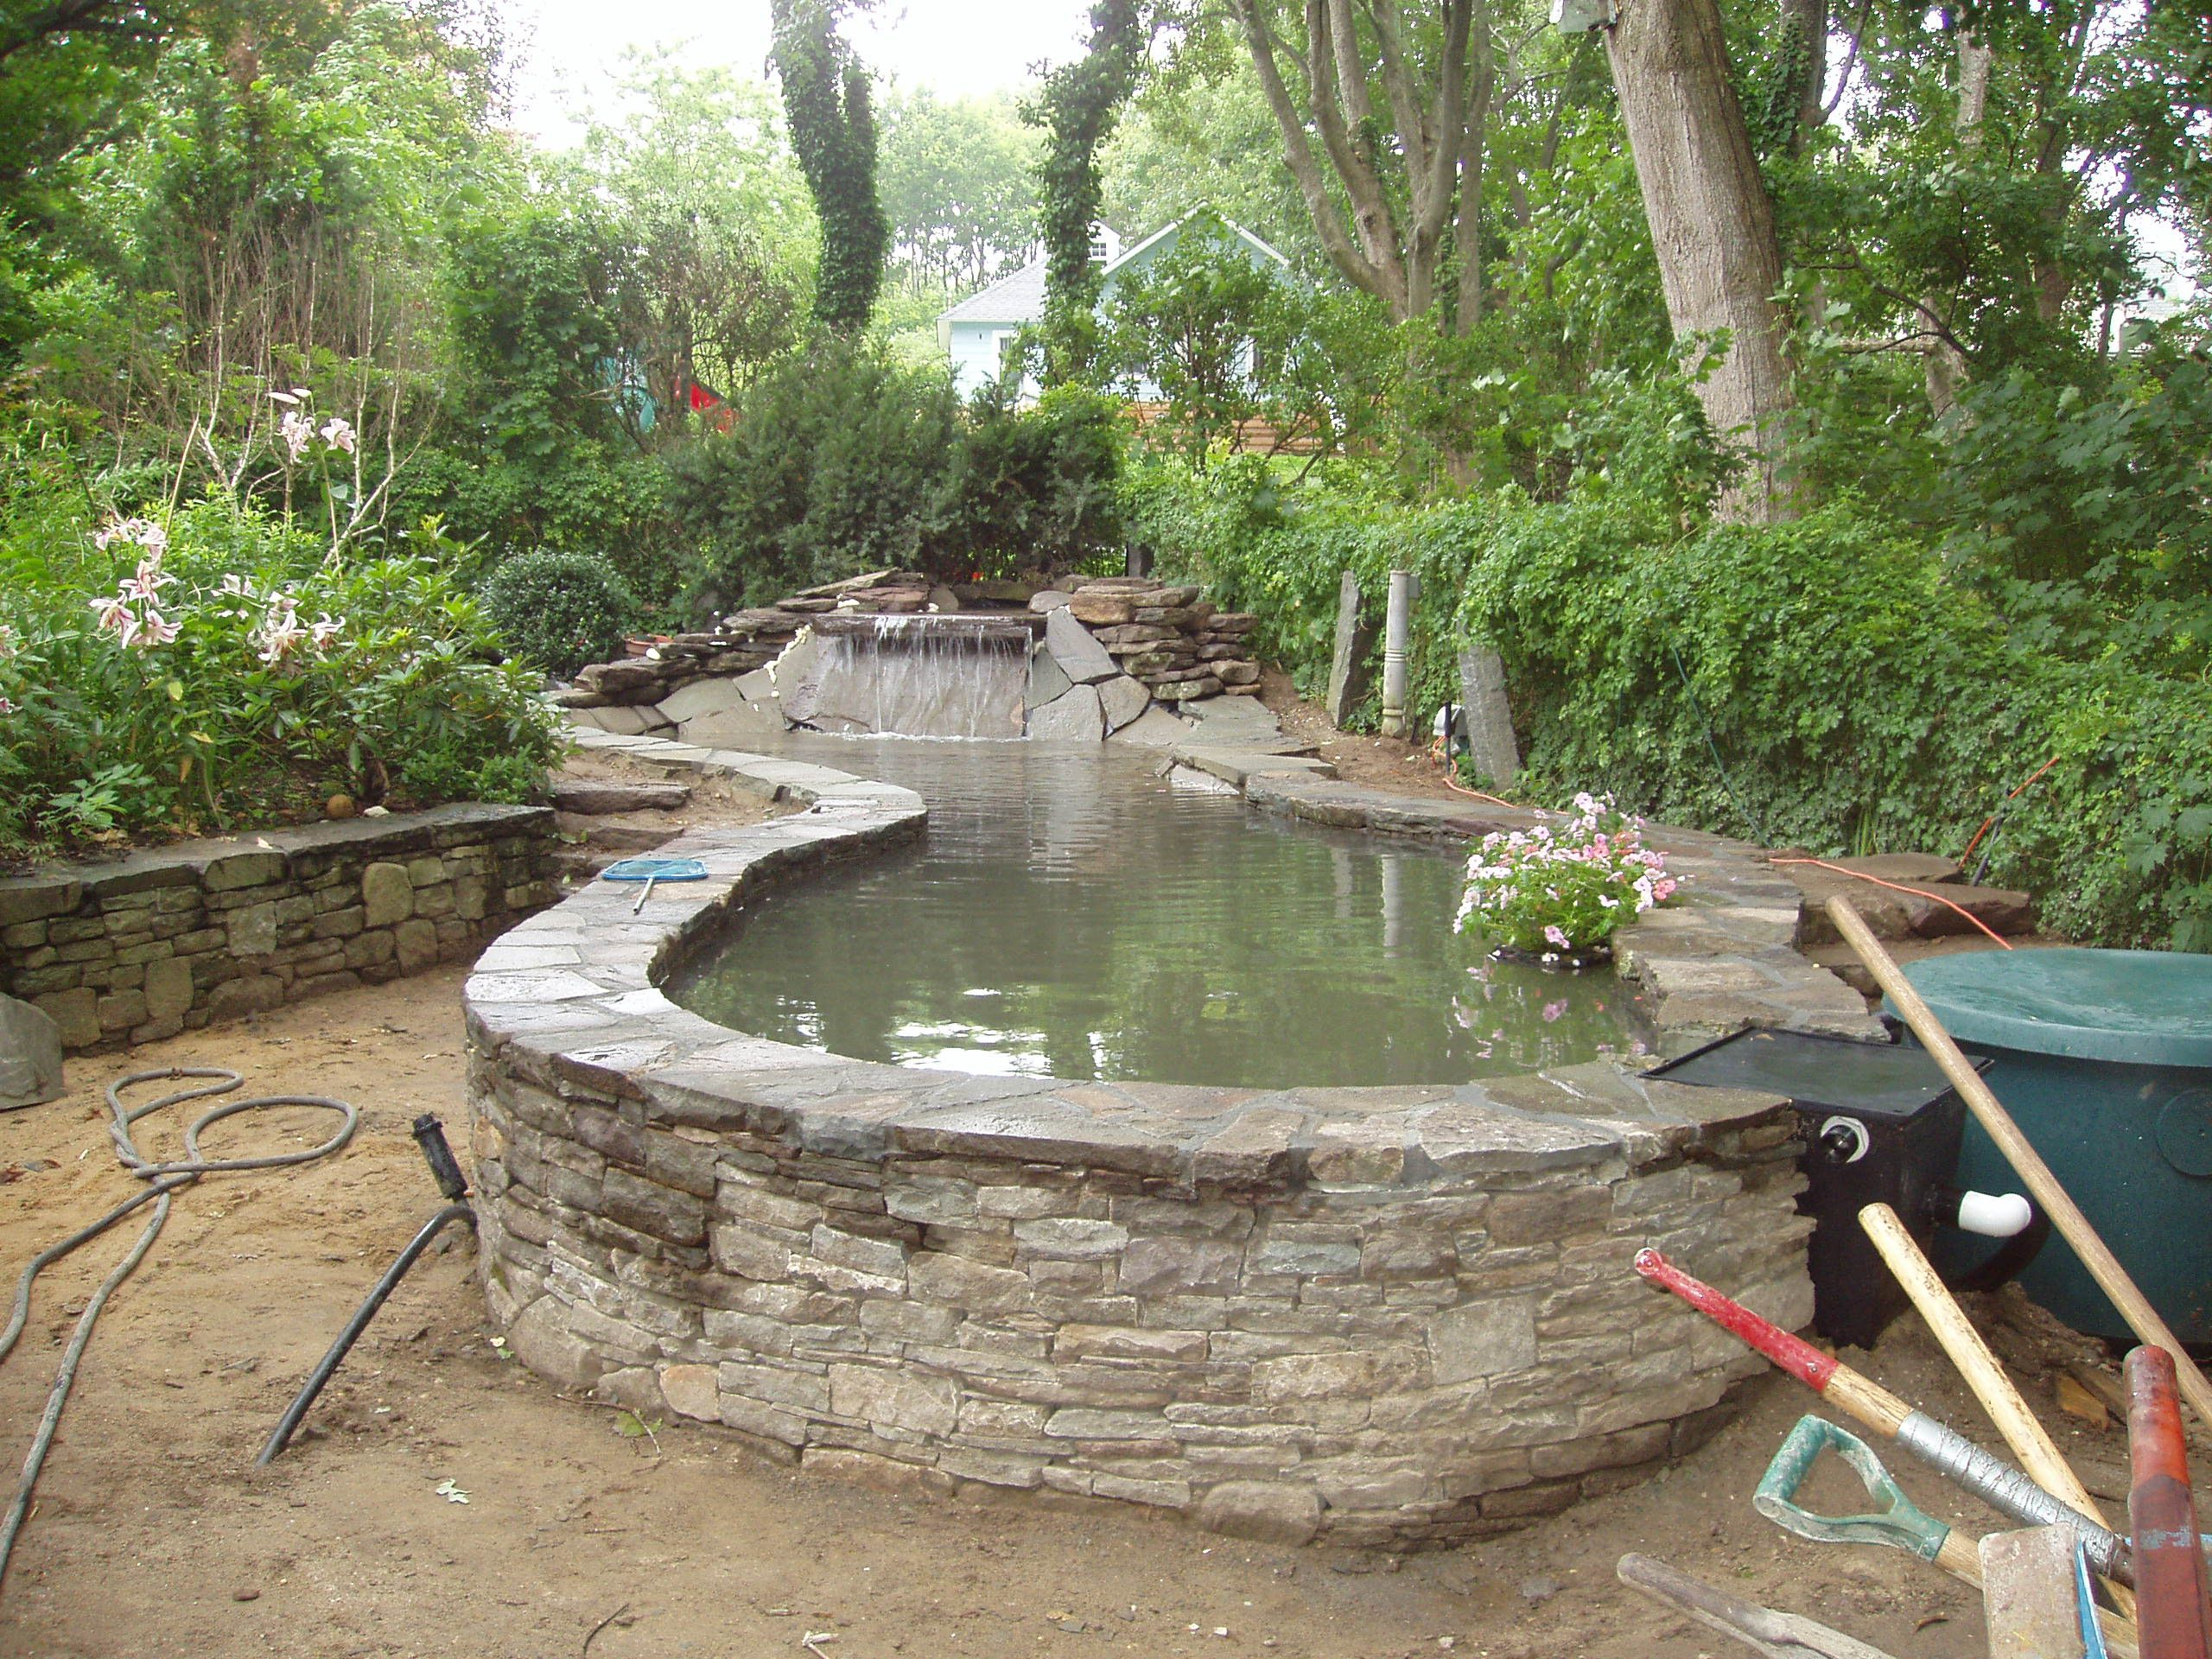 Fish pond pictures 95740 wallpapers things to make for Koi carp pond design